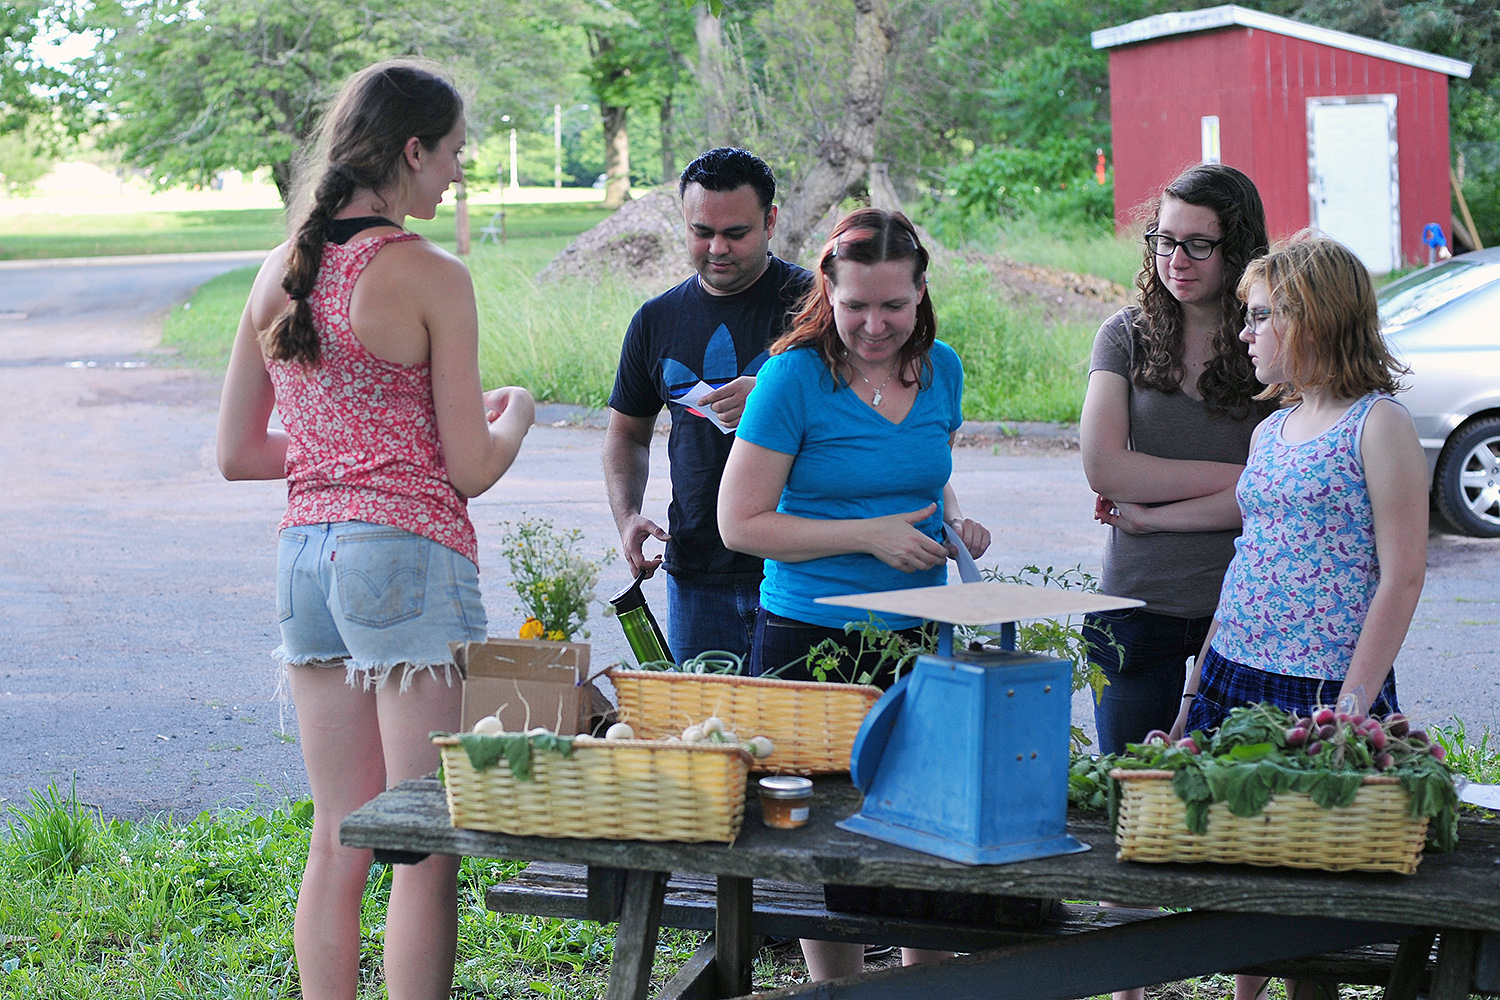 Students tending Wesleyan's Long Lane Farm are now selling their produce at a weekly farmers' market.